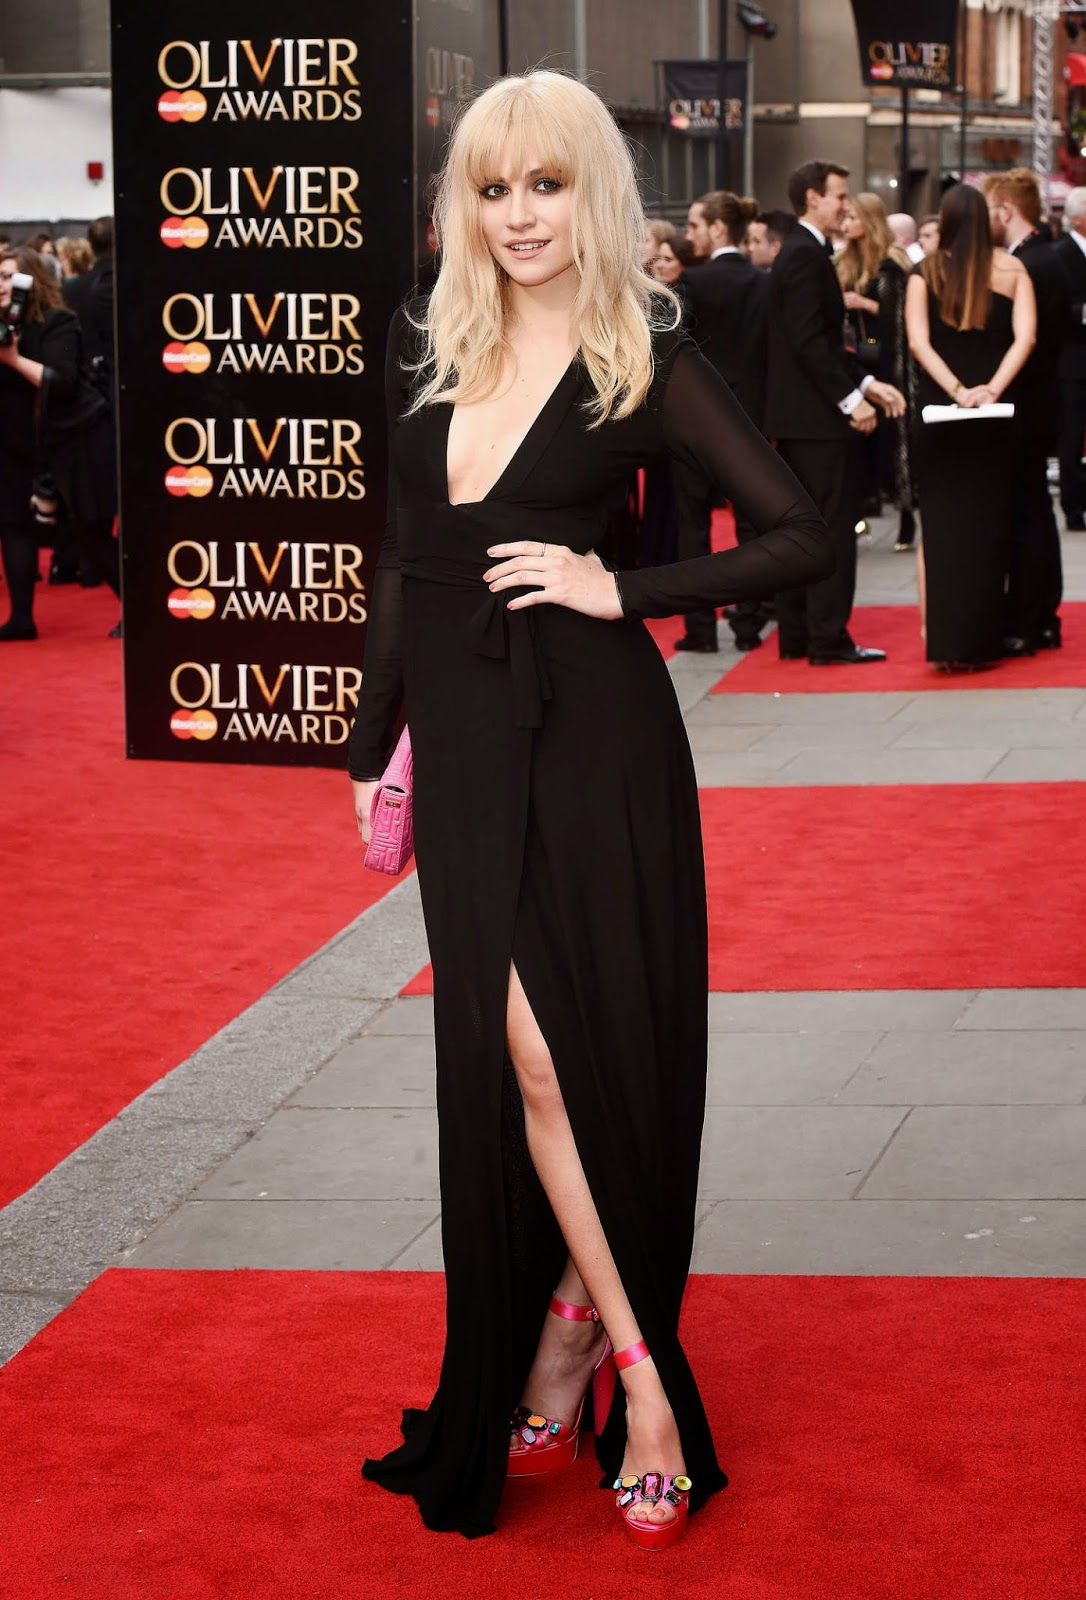 Pixie Lott shows off skin in a plunging dress at the 2015 Olivier Awards in London